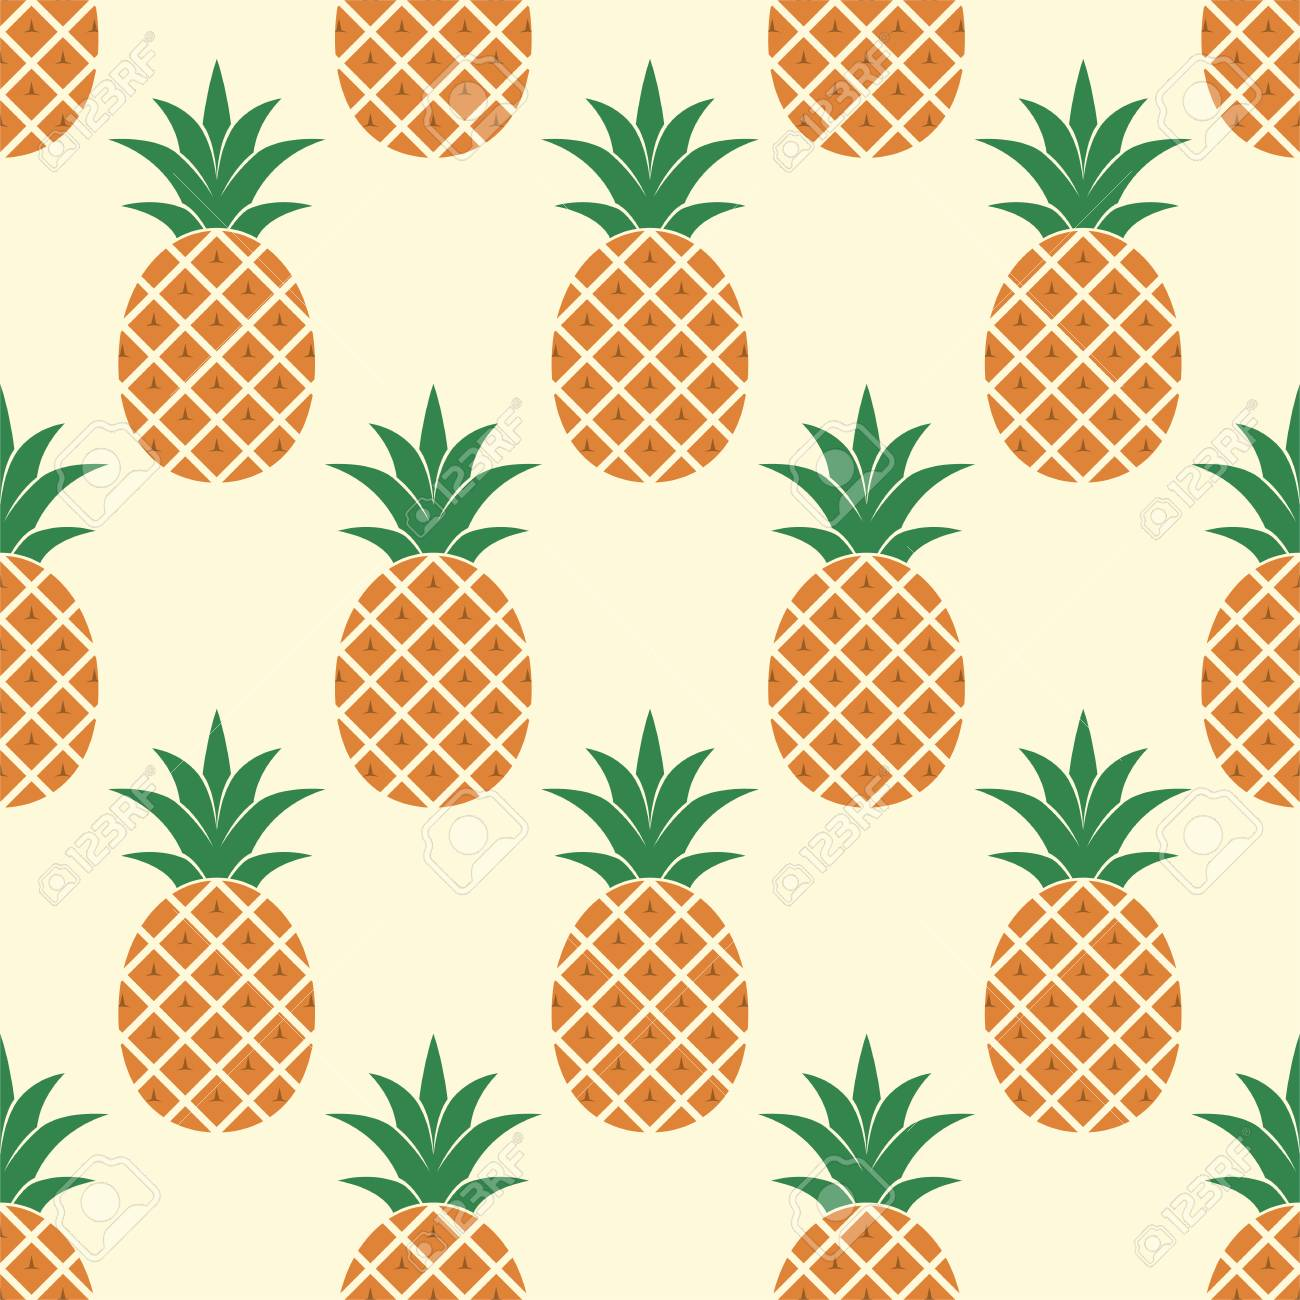 vector seamless pineapple pattern repeating summer background